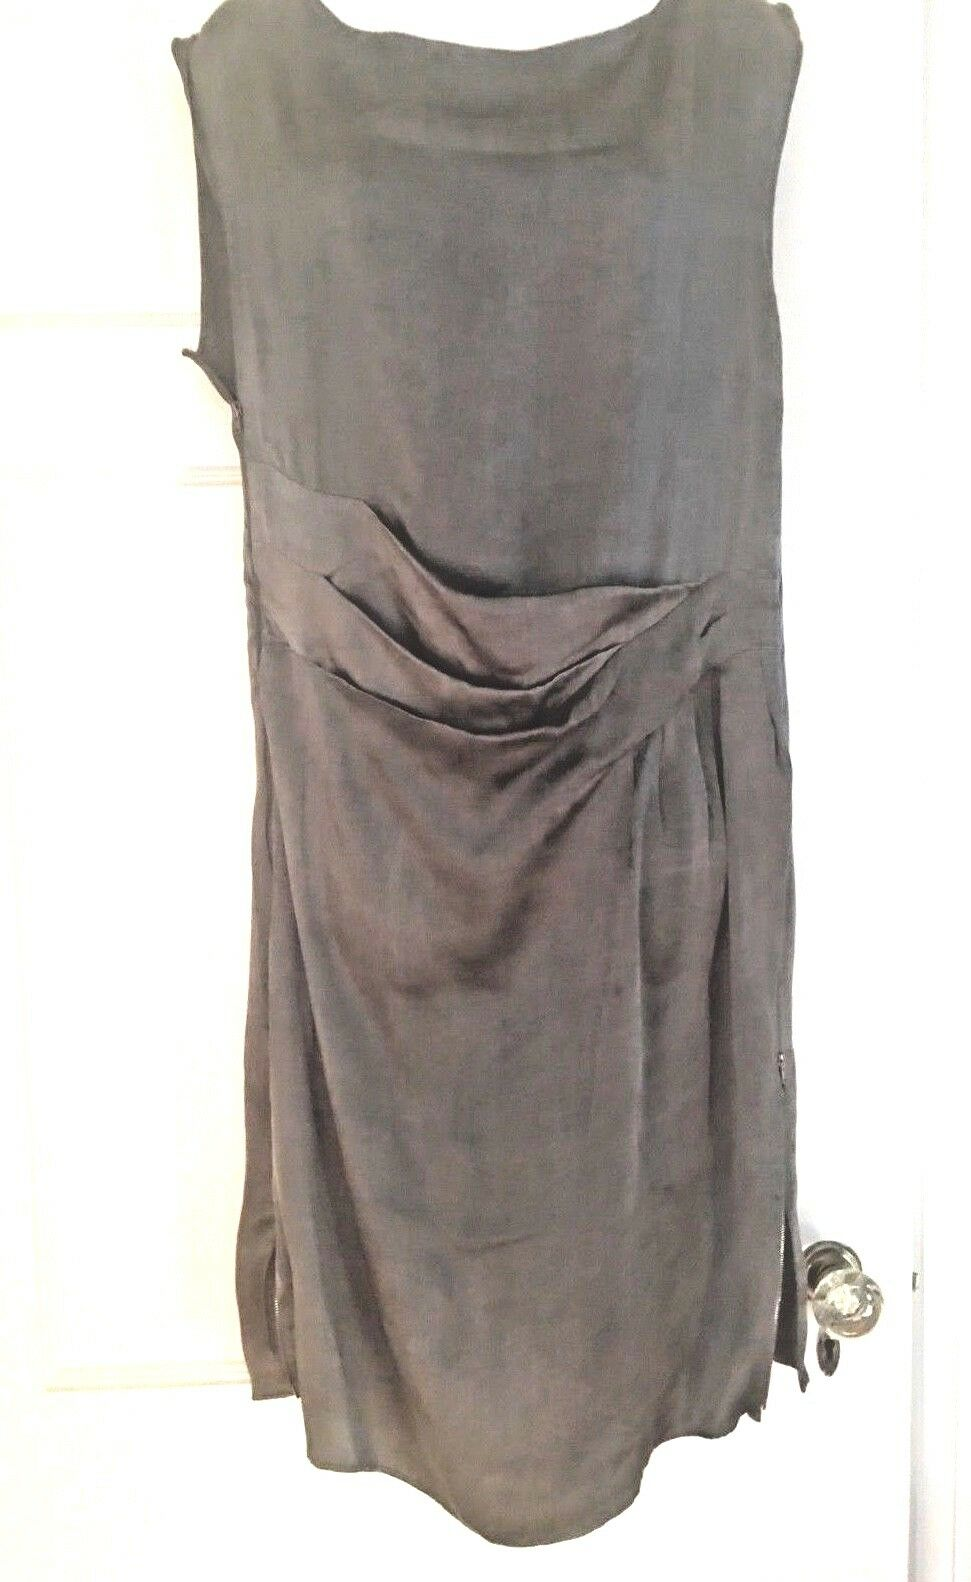 Maison Margiela 6 , grey silk dress,  knee length, cap sleeve, size 44 8